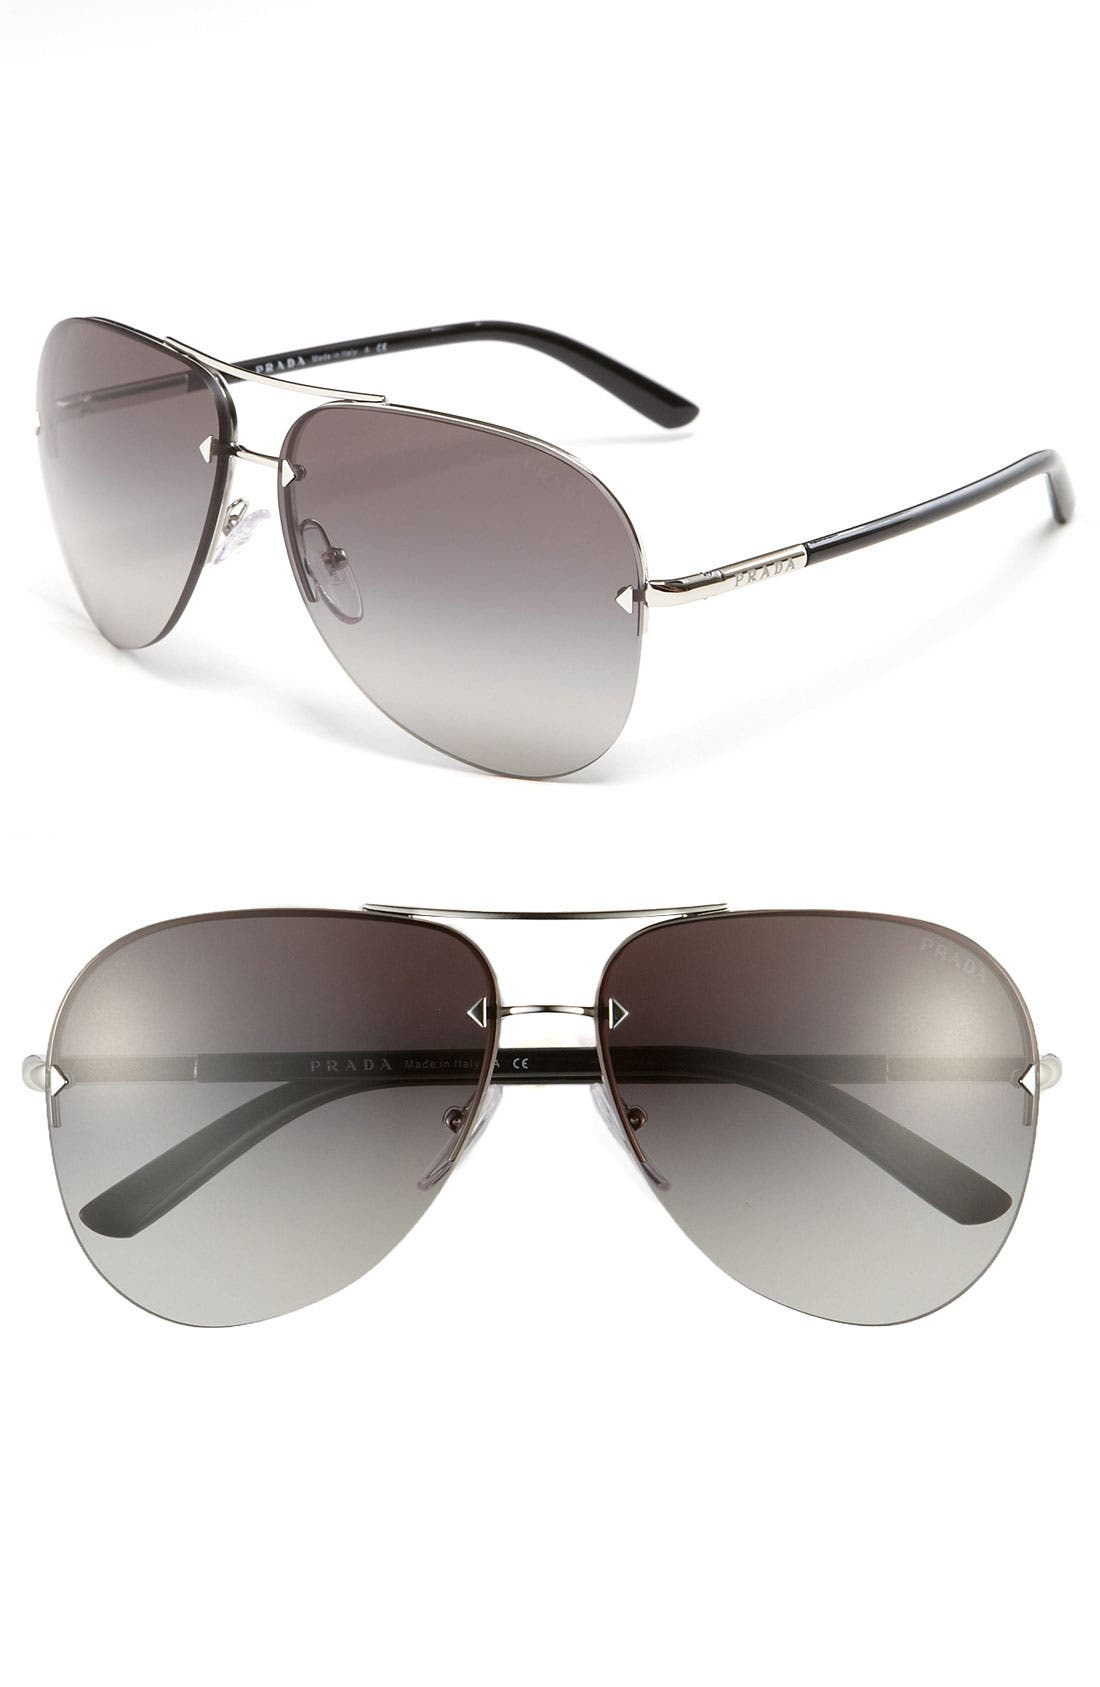 Alternate Image 1 Selected - Prada 61mm Aviator Sunglasses